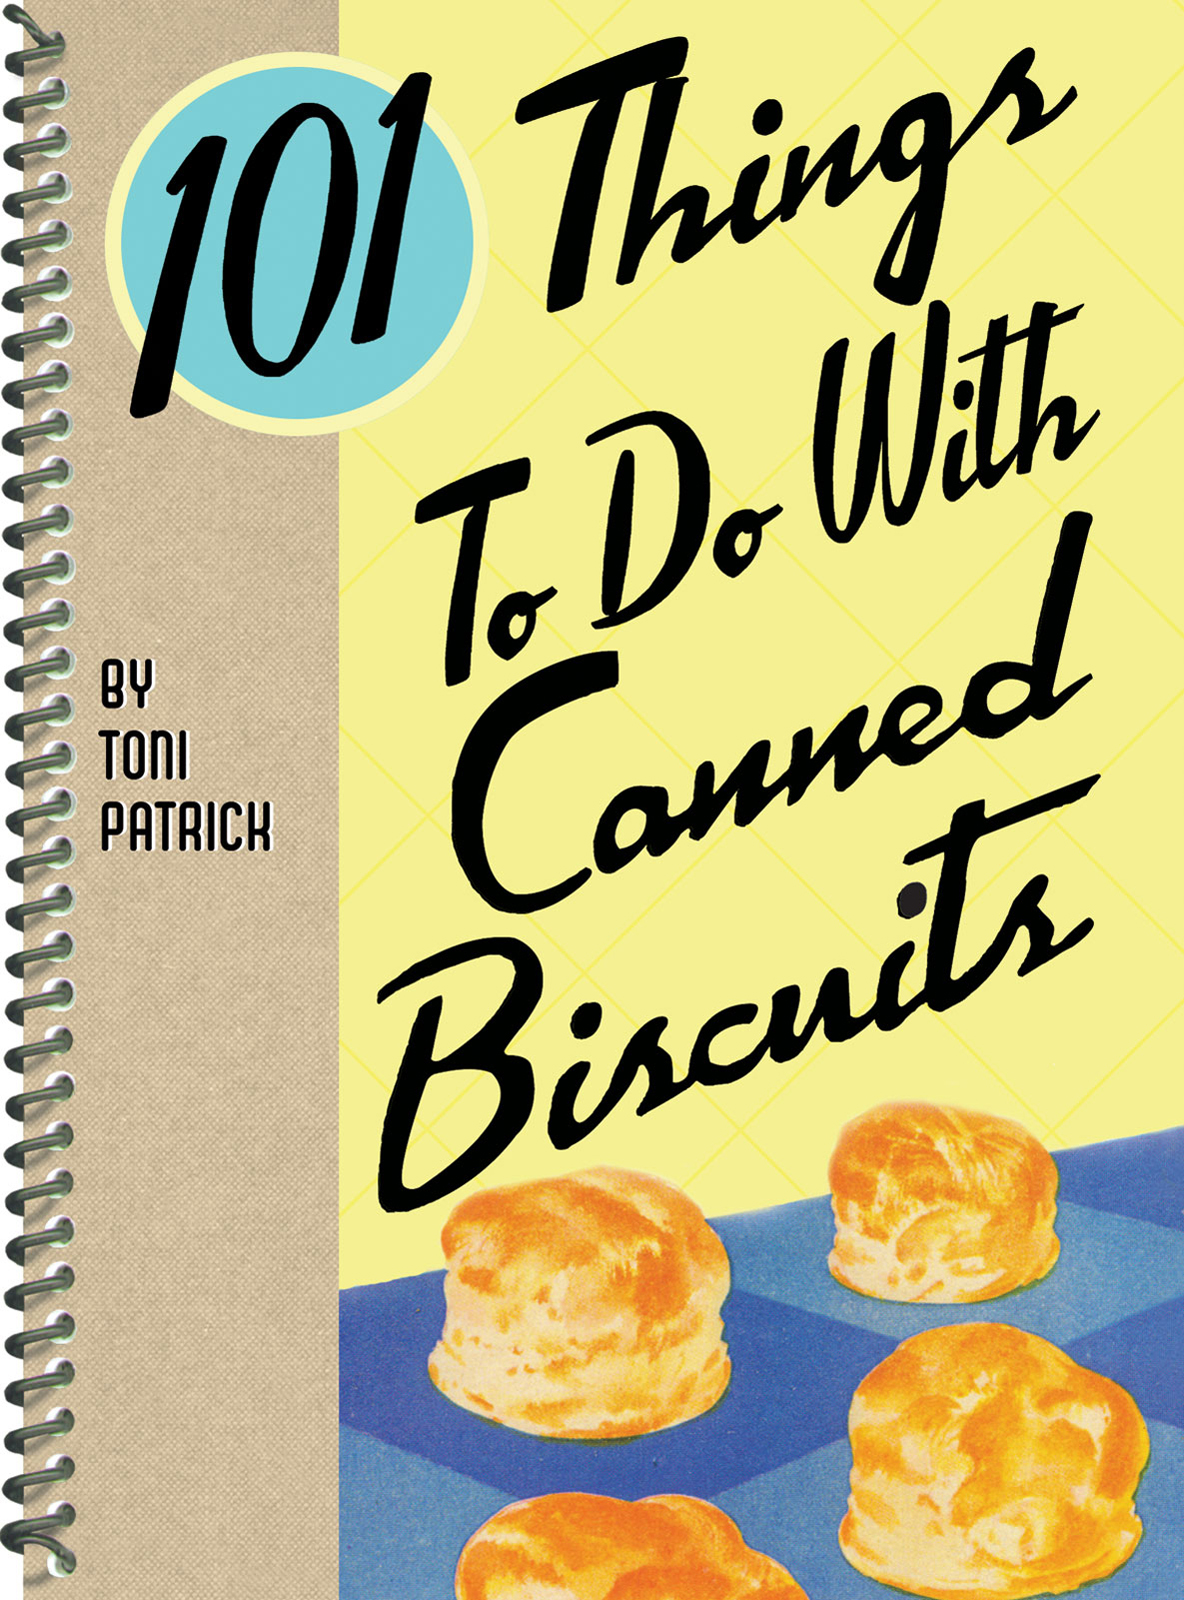 101 Things to do with Canned Biscuits By: Toni Patrick